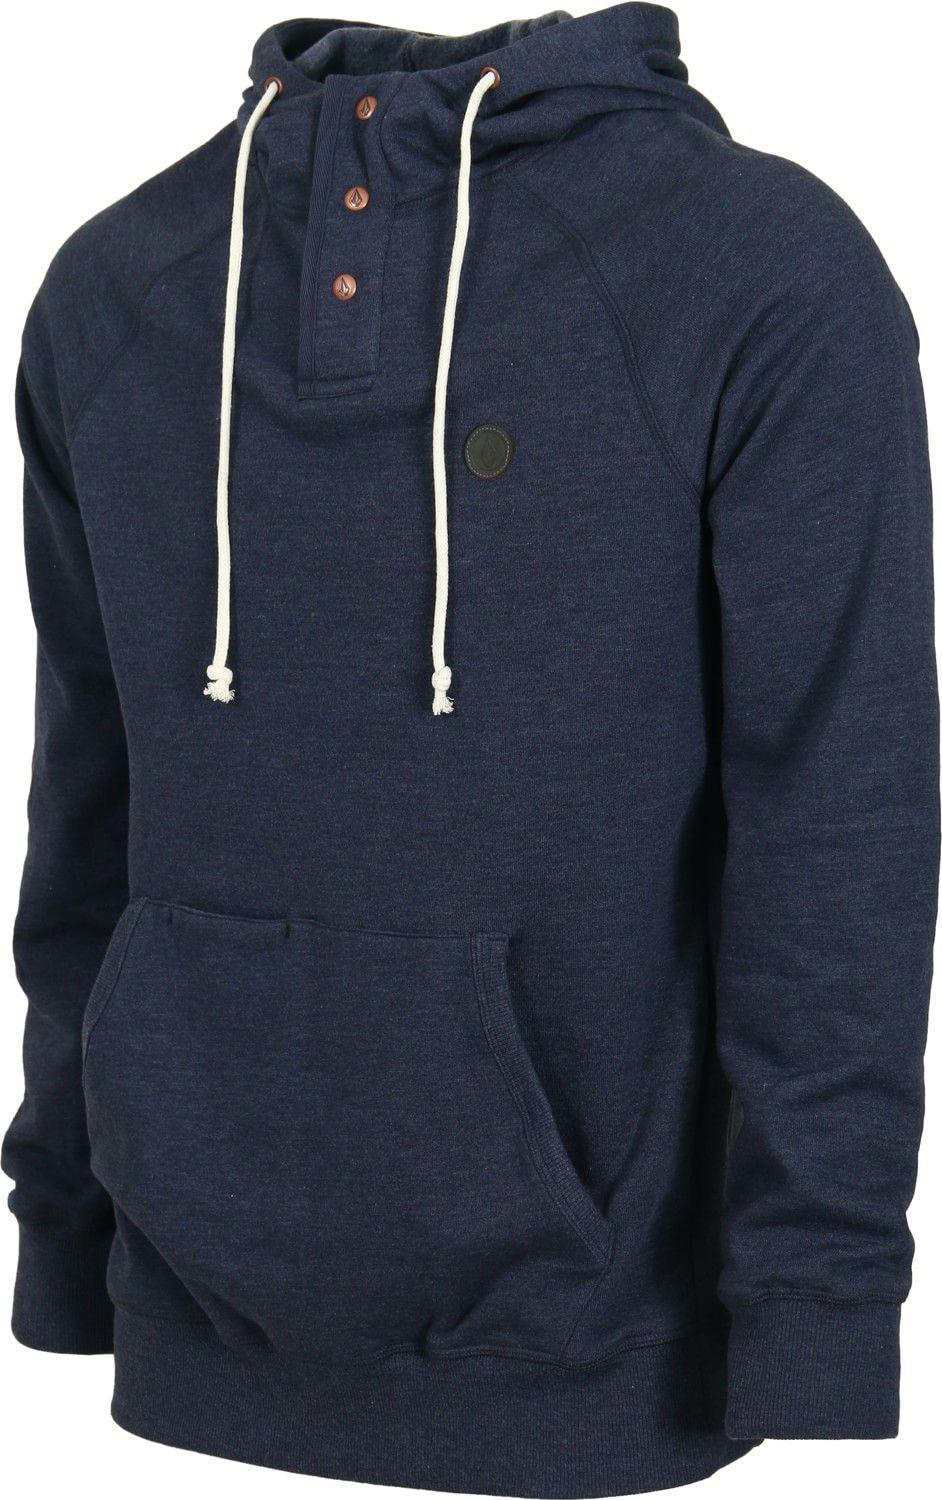 Volcom Pulli Hoodie Heather Navy Free Shipping Volcom Clothing Mens Outfits Hoddies Outfits Men [ 1500 x 942 Pixel ]